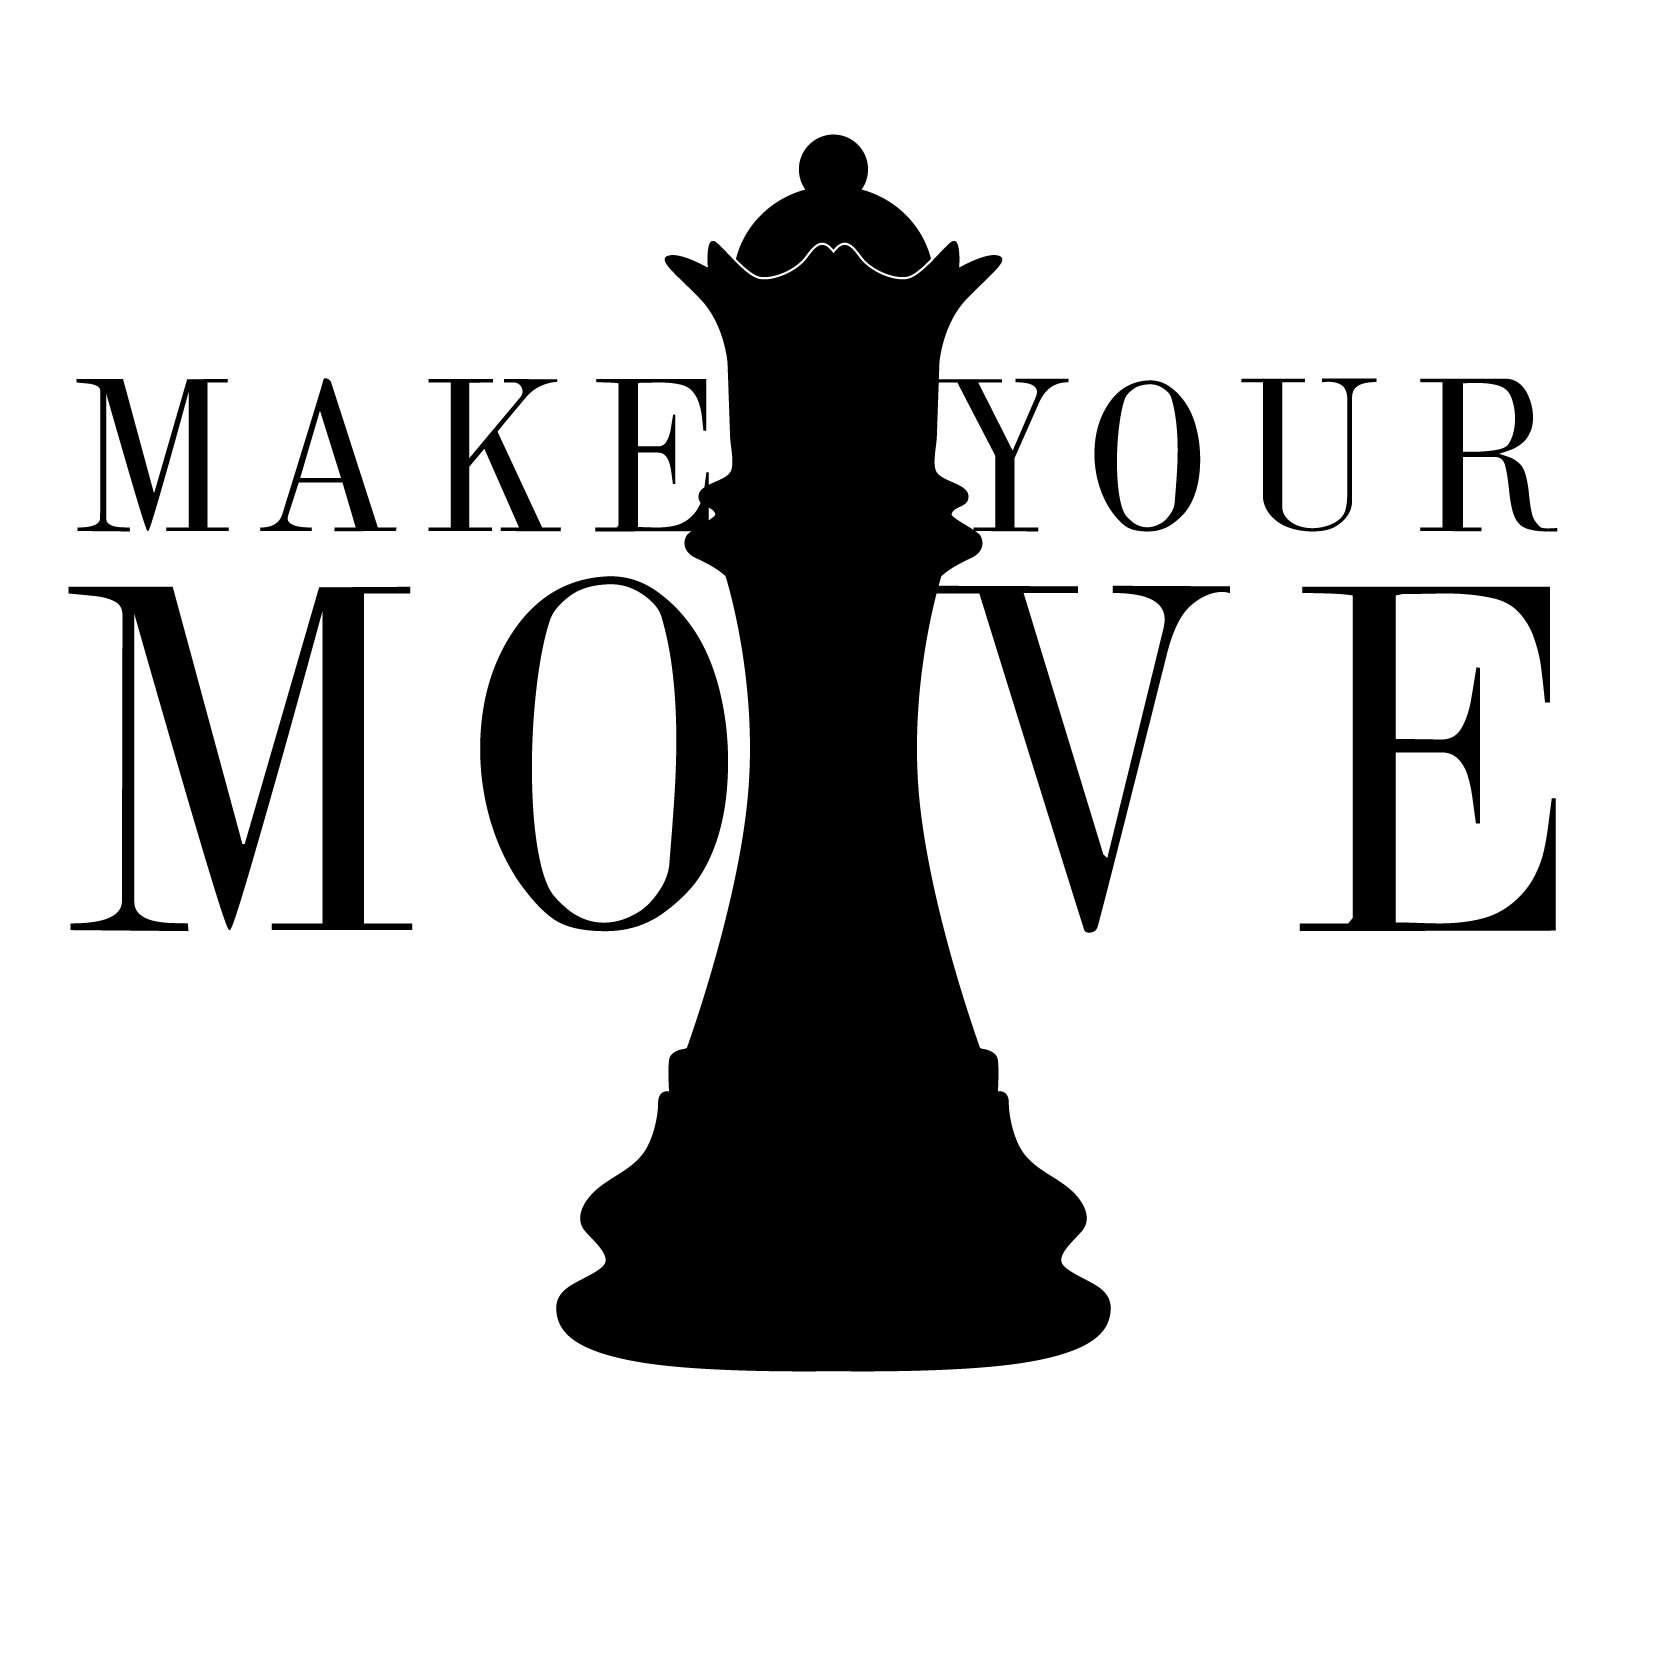 Make Your Move Quote Chess, Black - Vinyl Wall Art Decal for Homes, Offices, Kids Rooms, Nurseries, Schools, High Schools, Colleges, Universities, Interior Designers, Architects, Remodelers